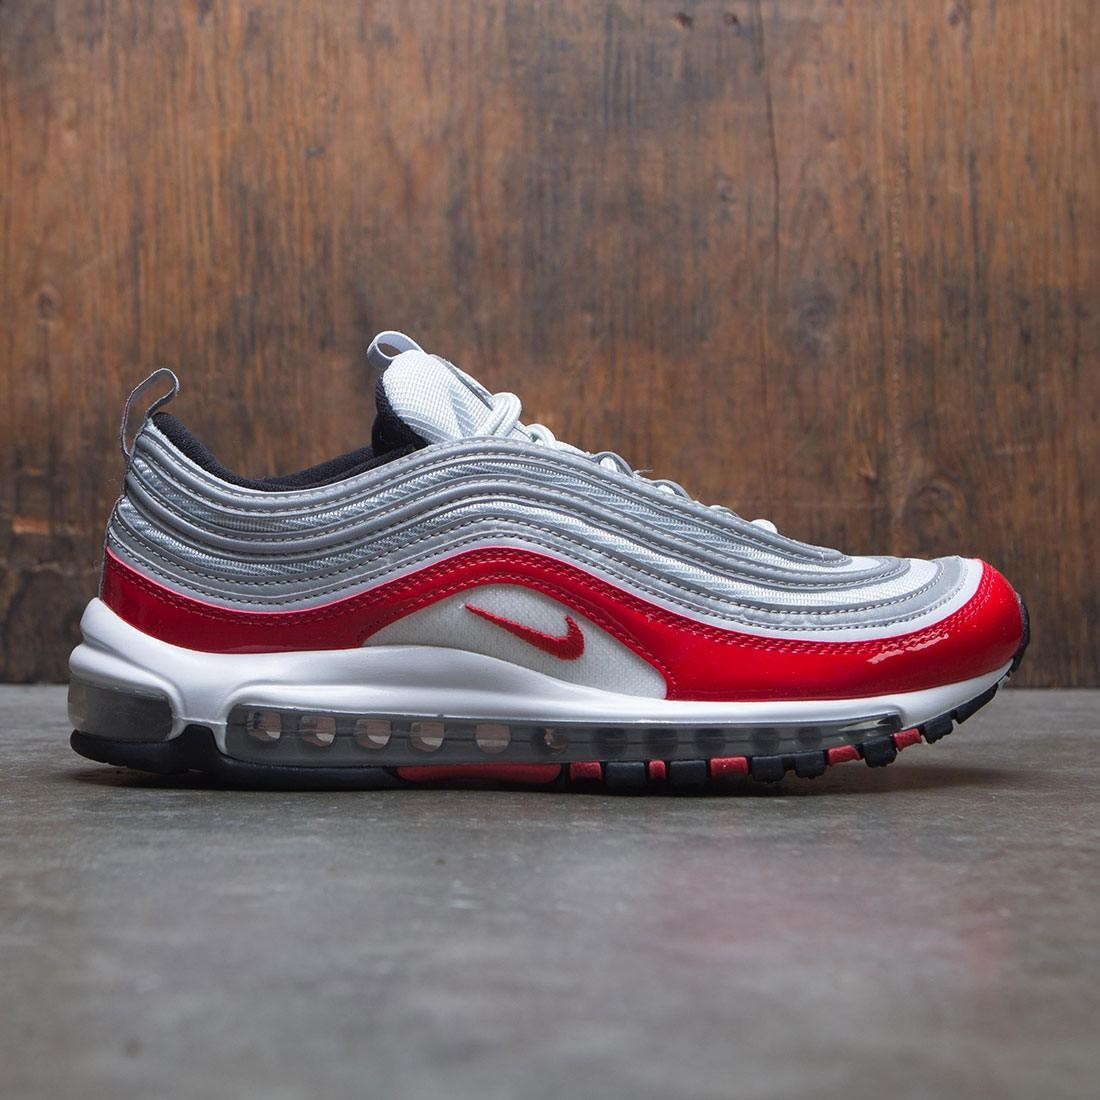 edf89209d61 nike men air max 97 pure platinum university red black white